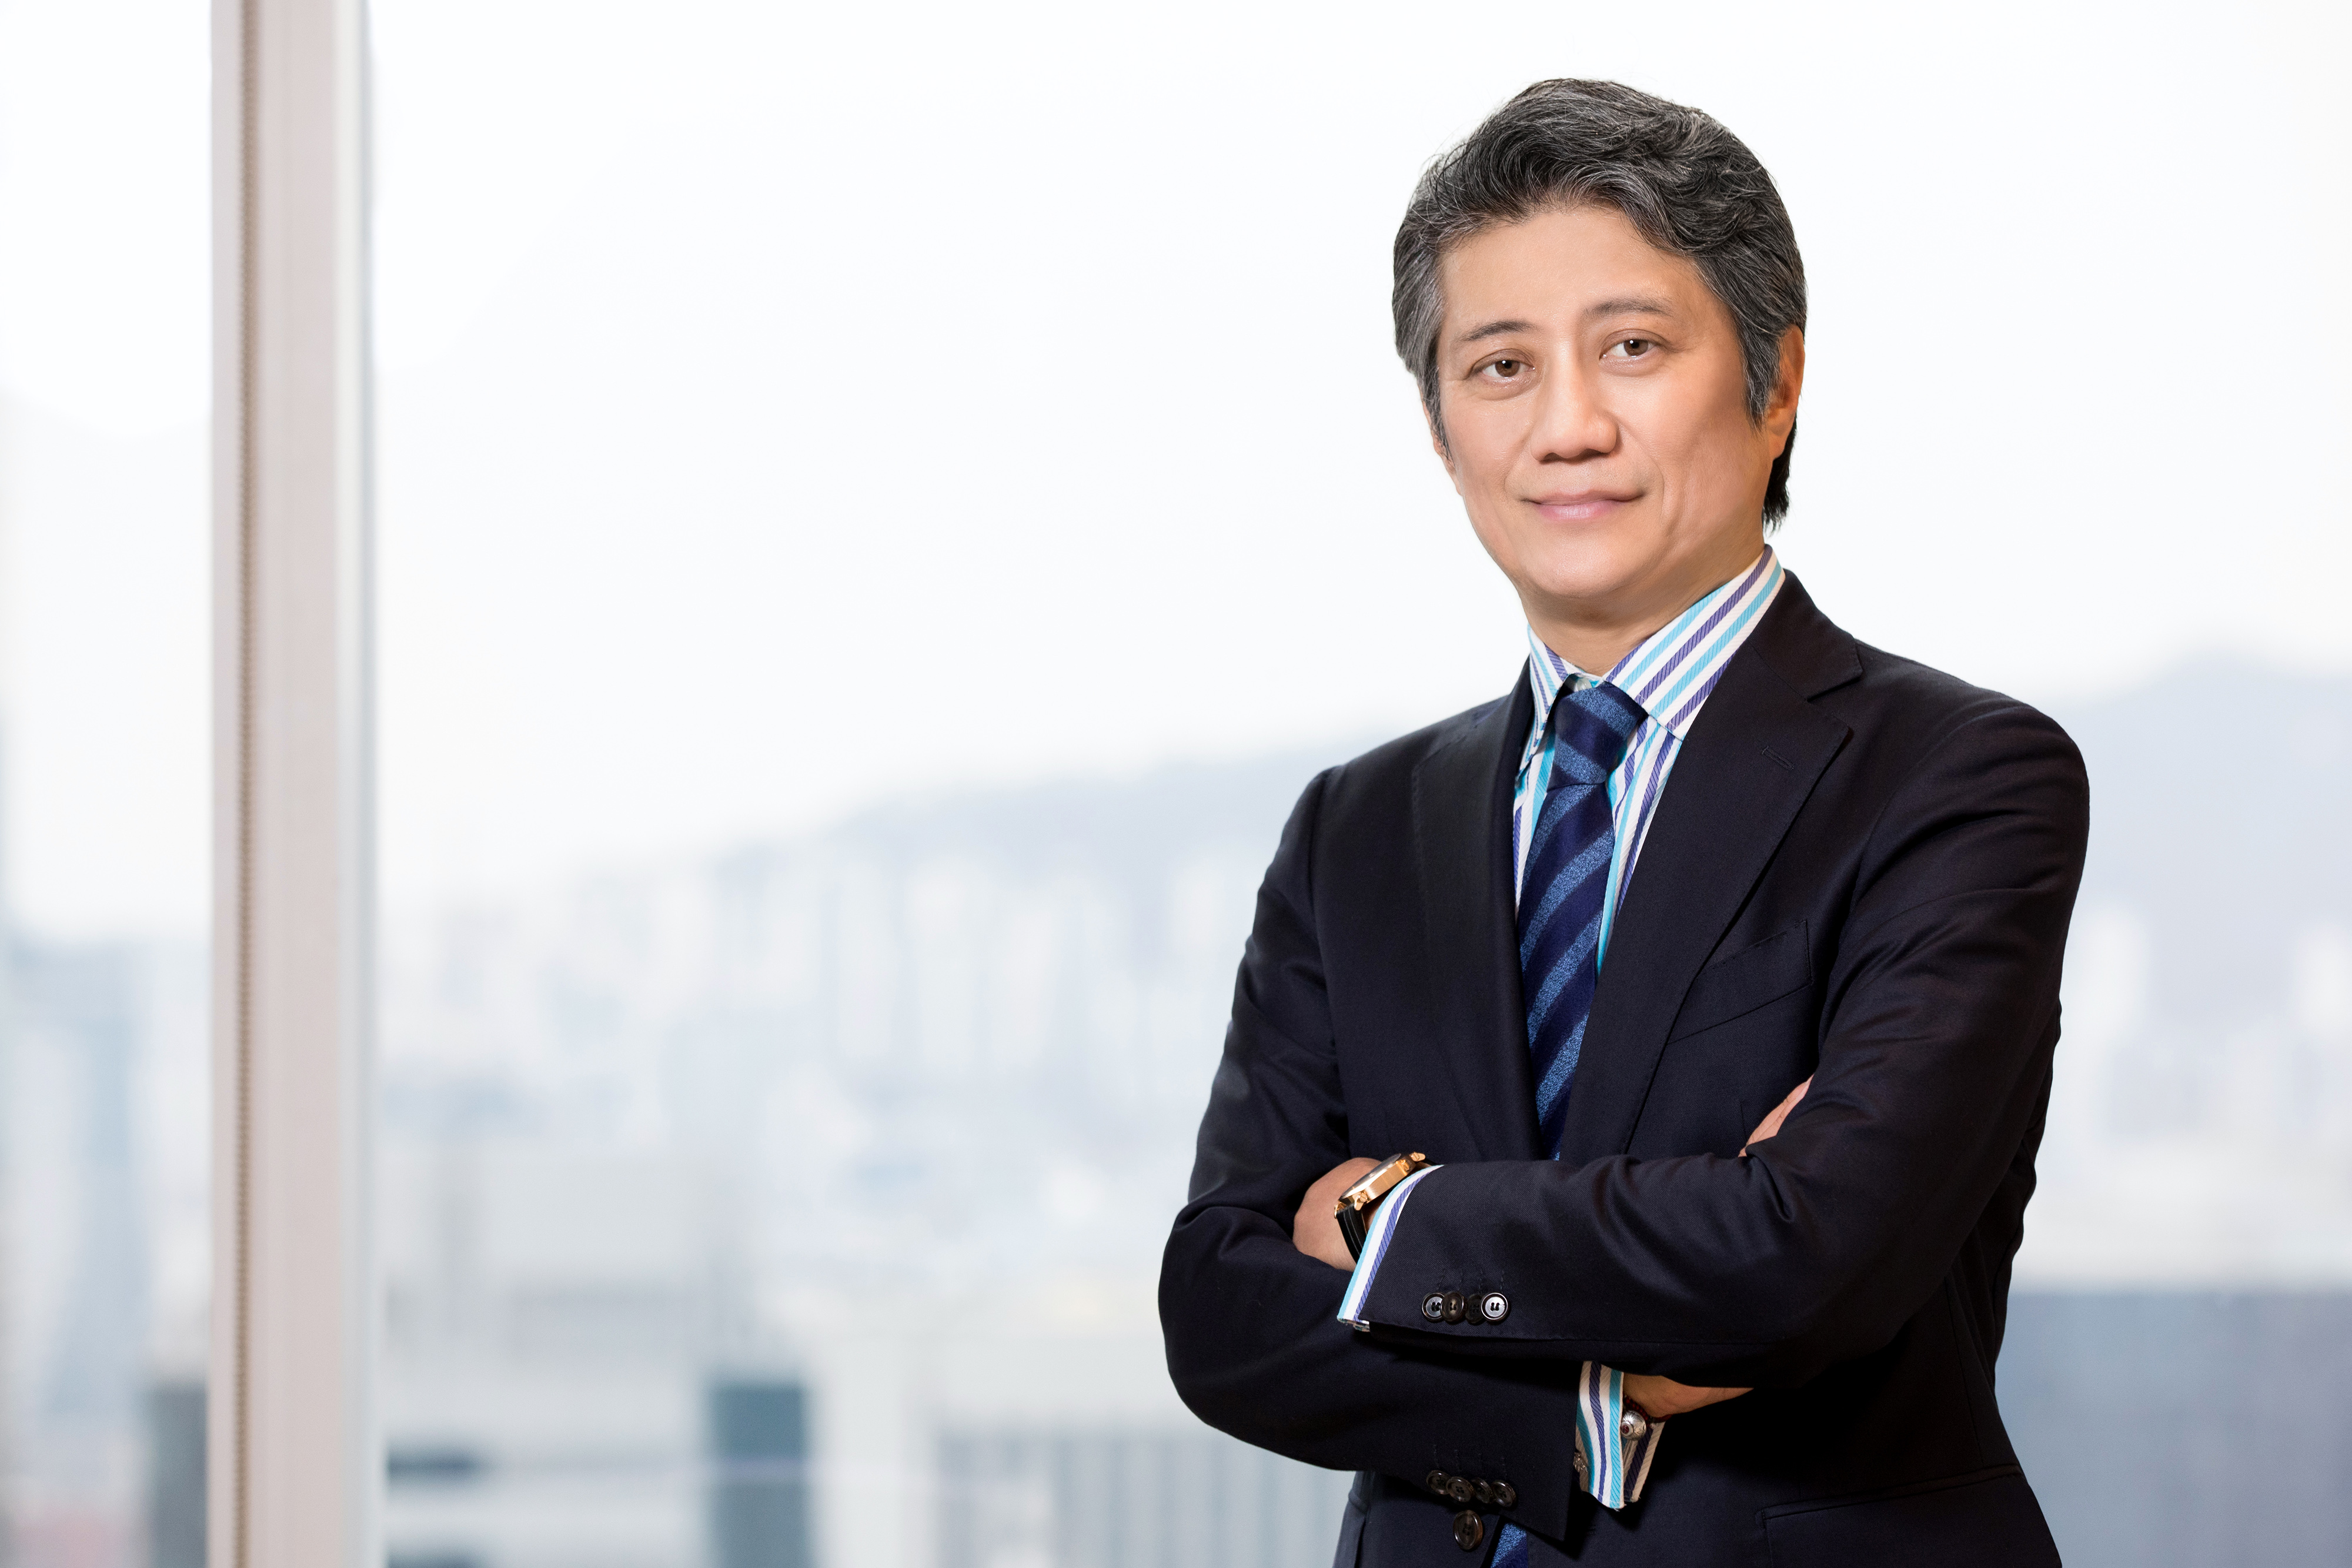 Dr. Um Tae-jong, the newly appointed head of the Korean arm of State Street Global Advisors.